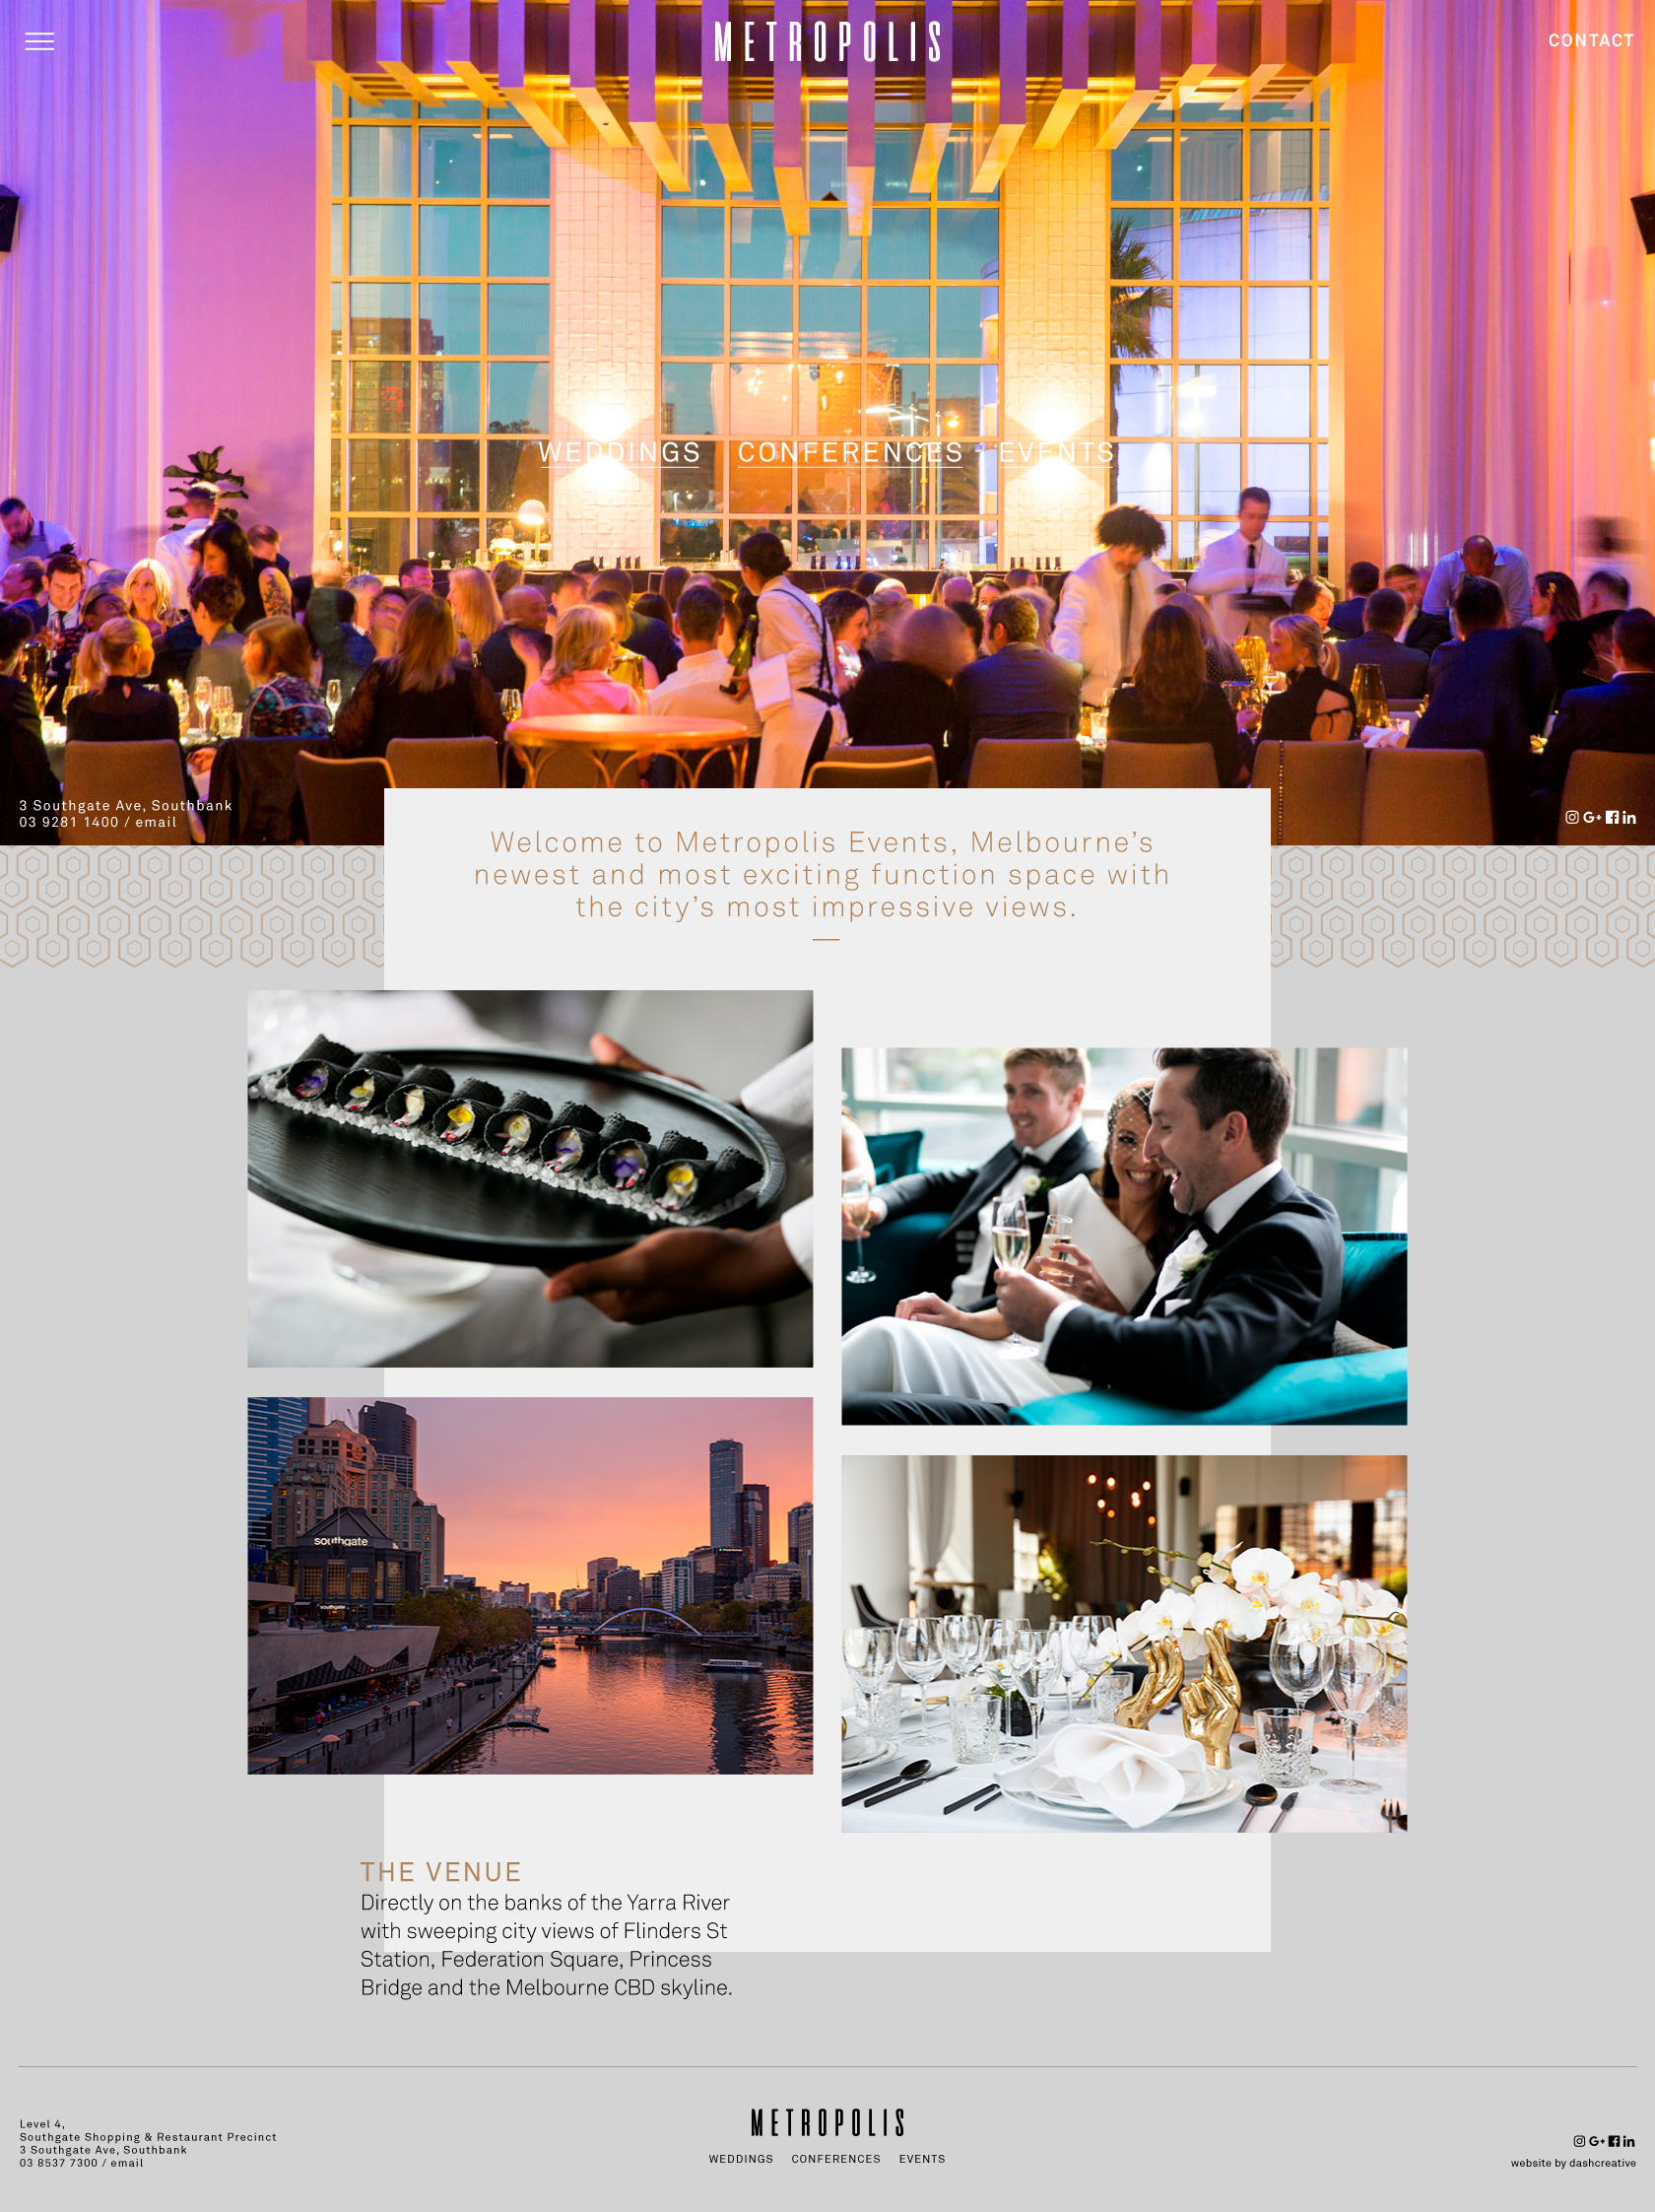 Metropolis Events - Website Design